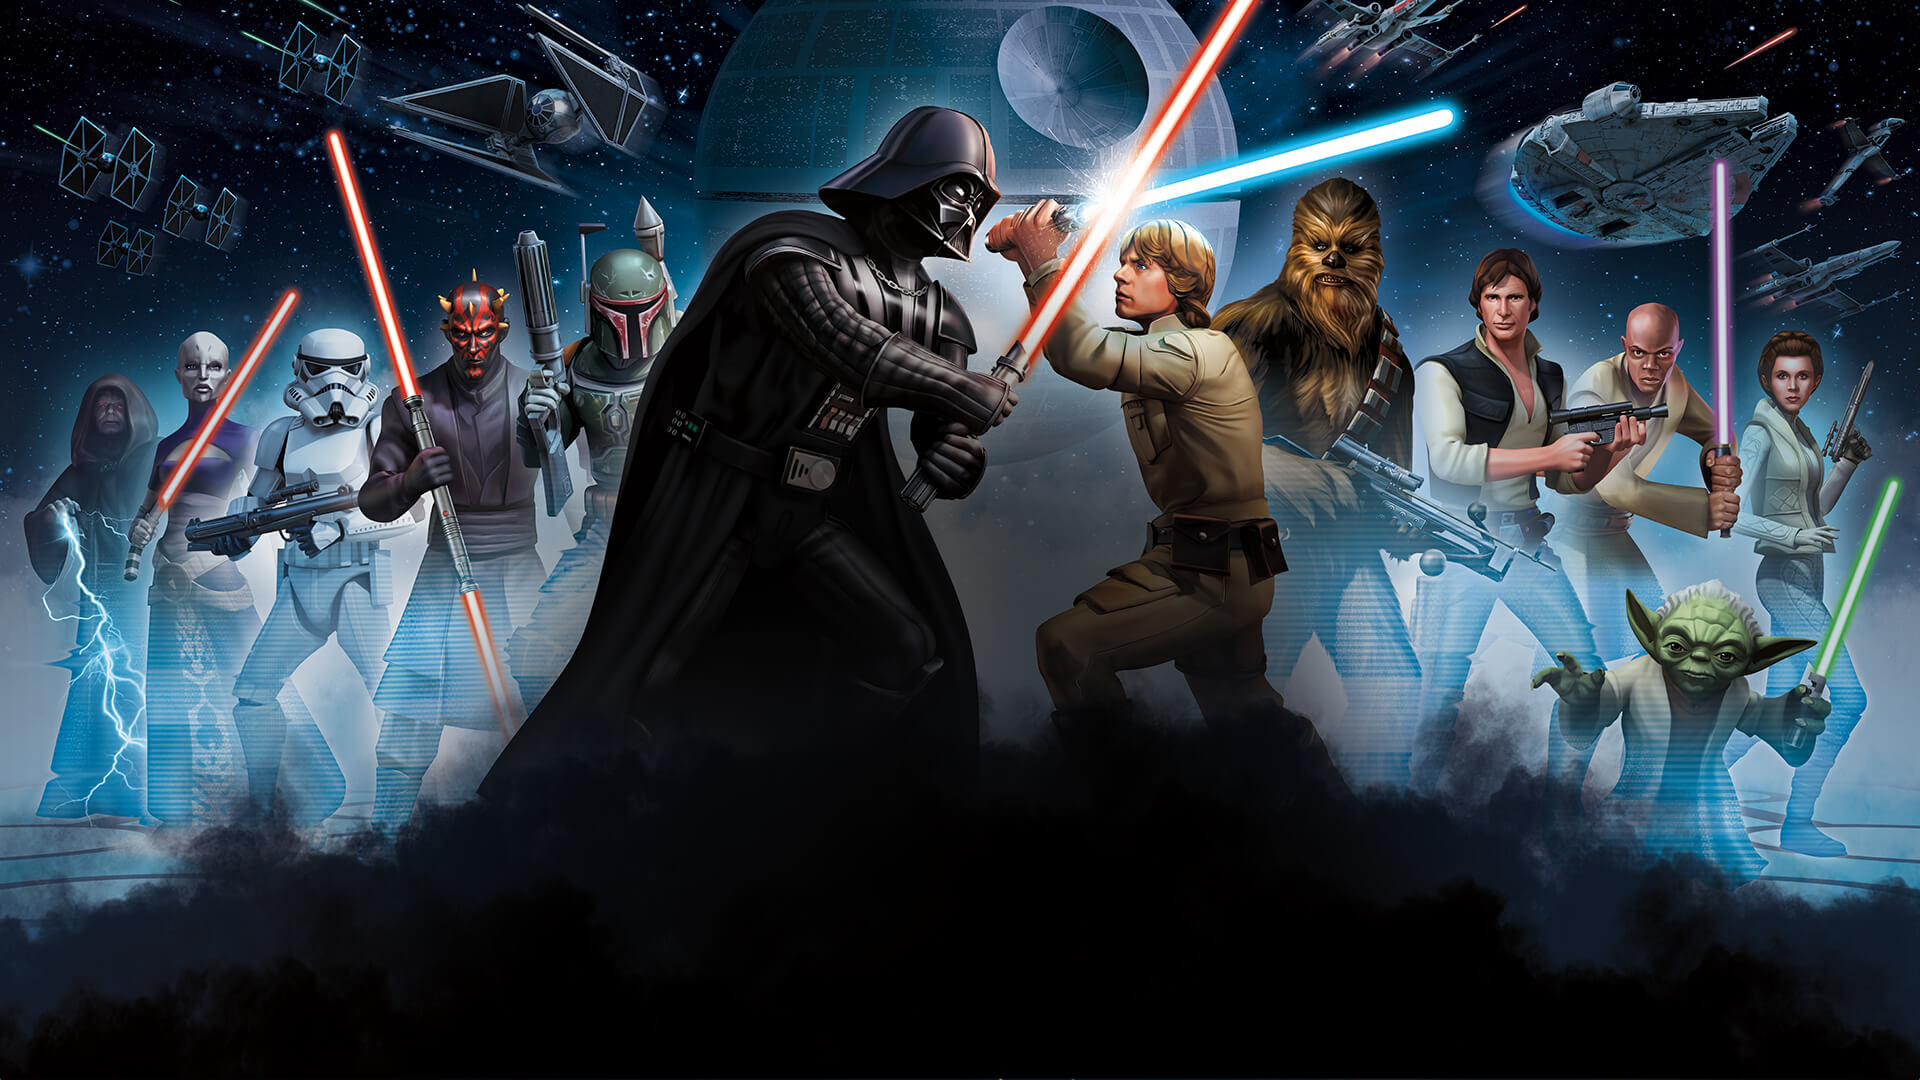 … sci fi star wars wallpapers desktop phone tablet awesome …